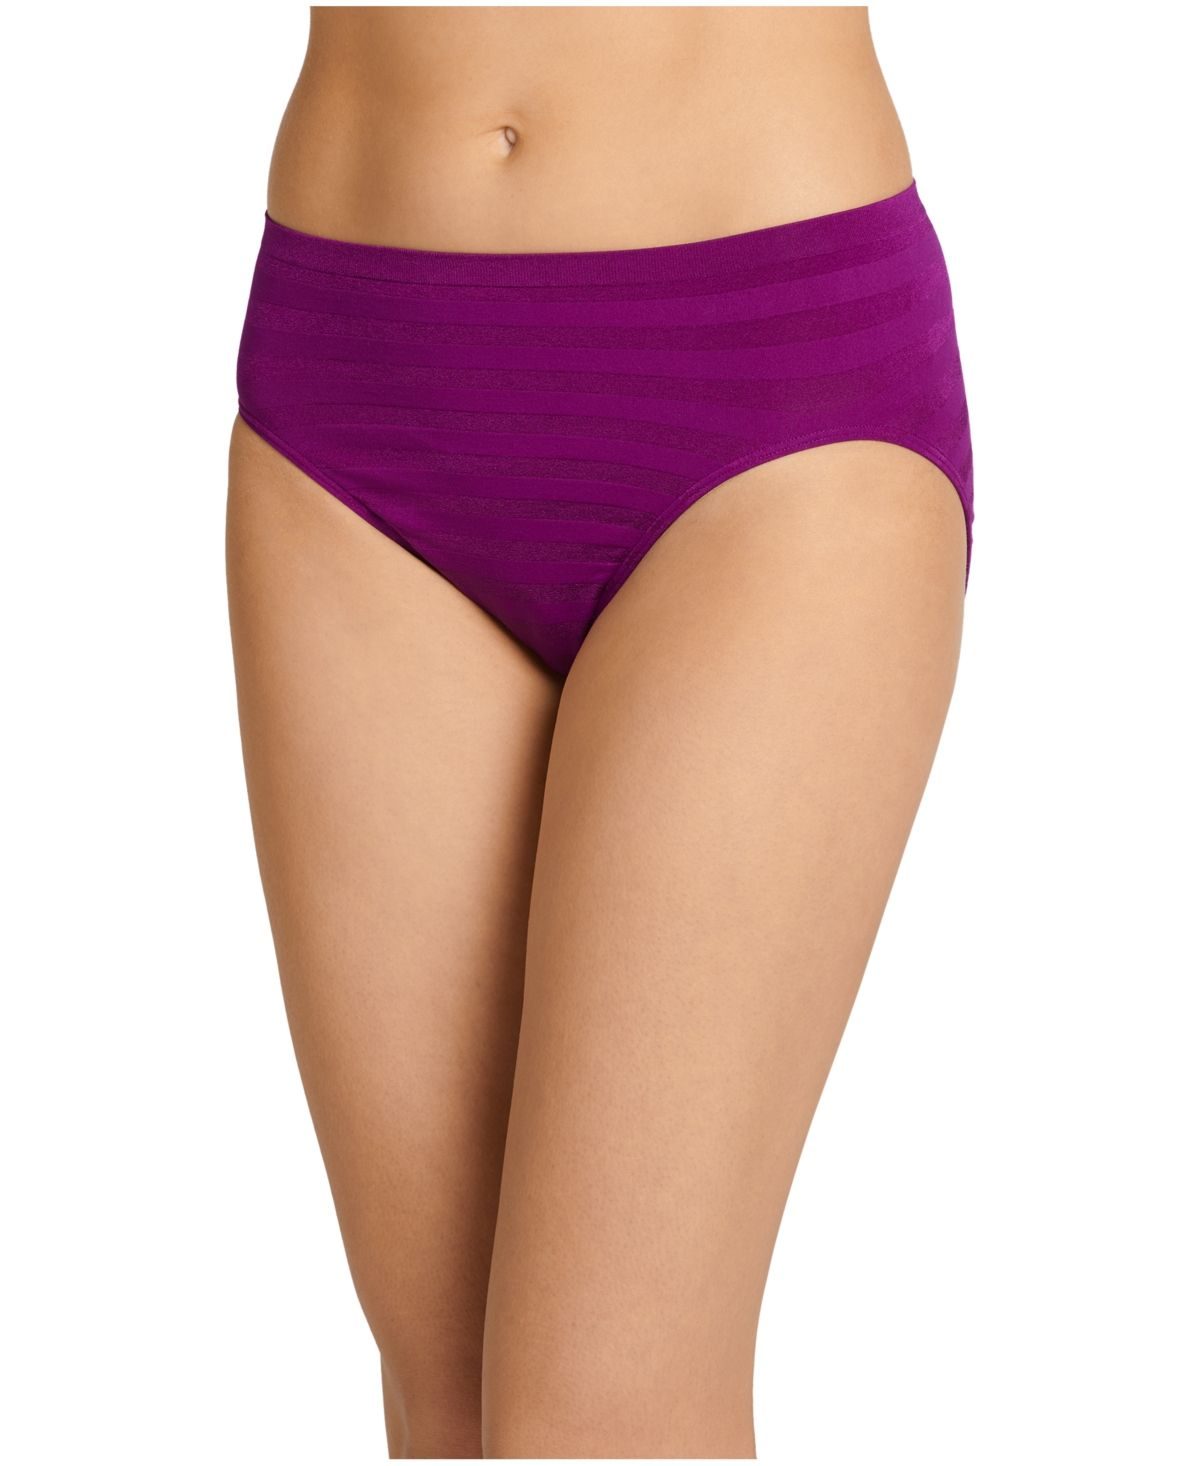 Panties For Women Briefs 100 Cotton Underwear Panties With Hole